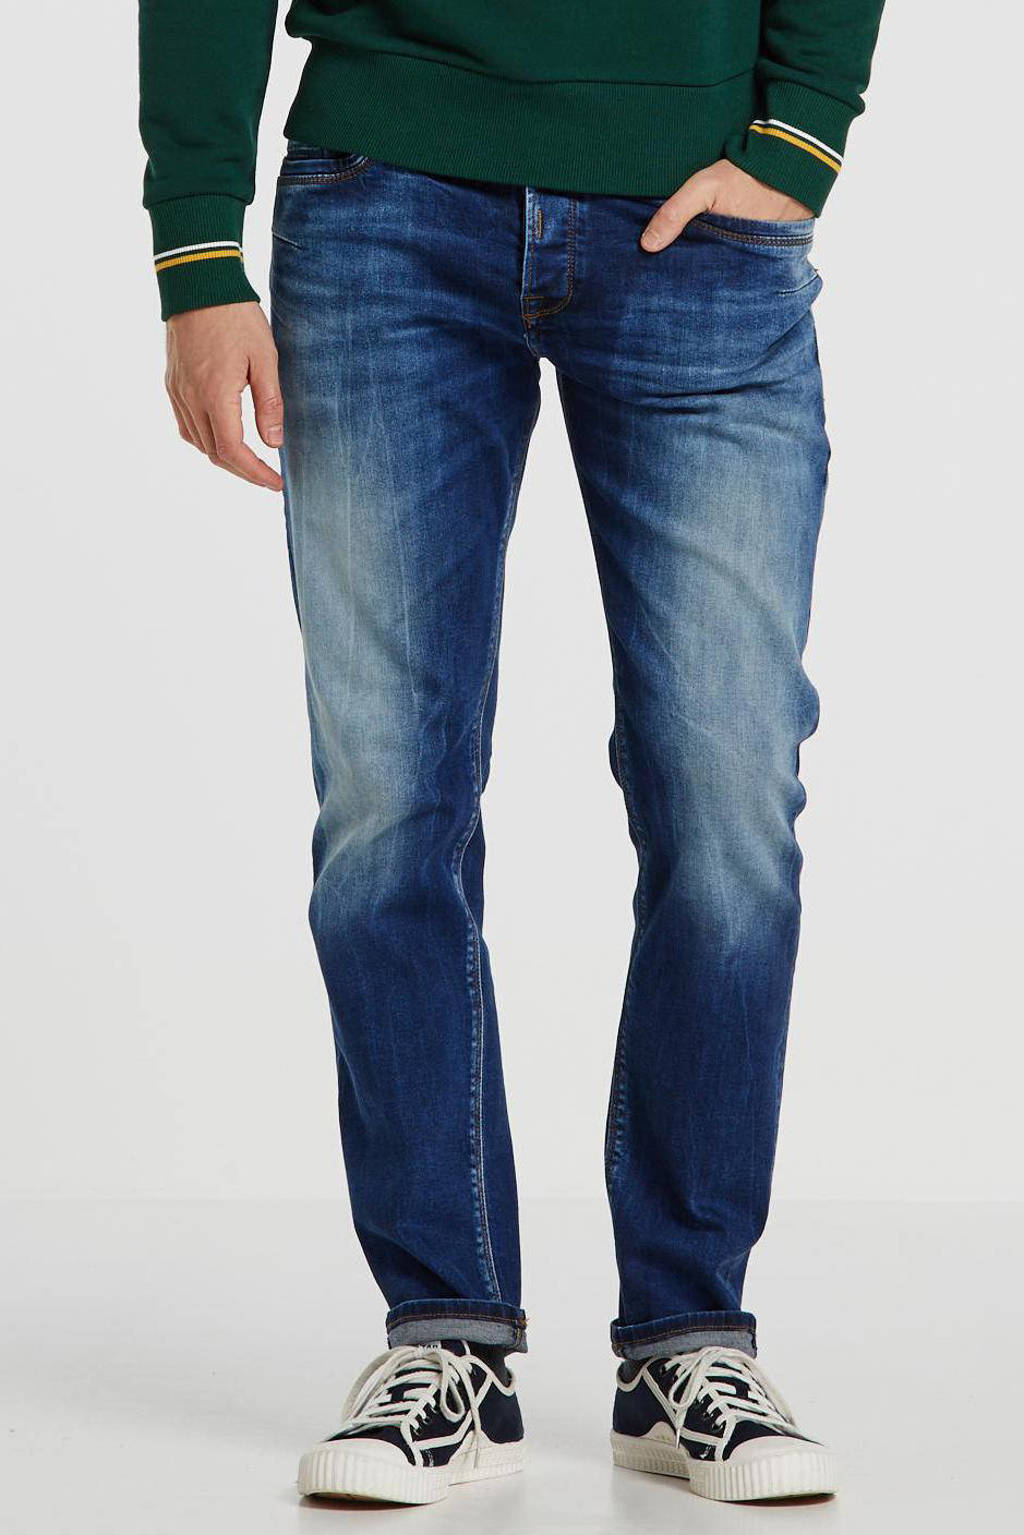 LTB tapered fit jeans Servando XD, 51866 Dualsky